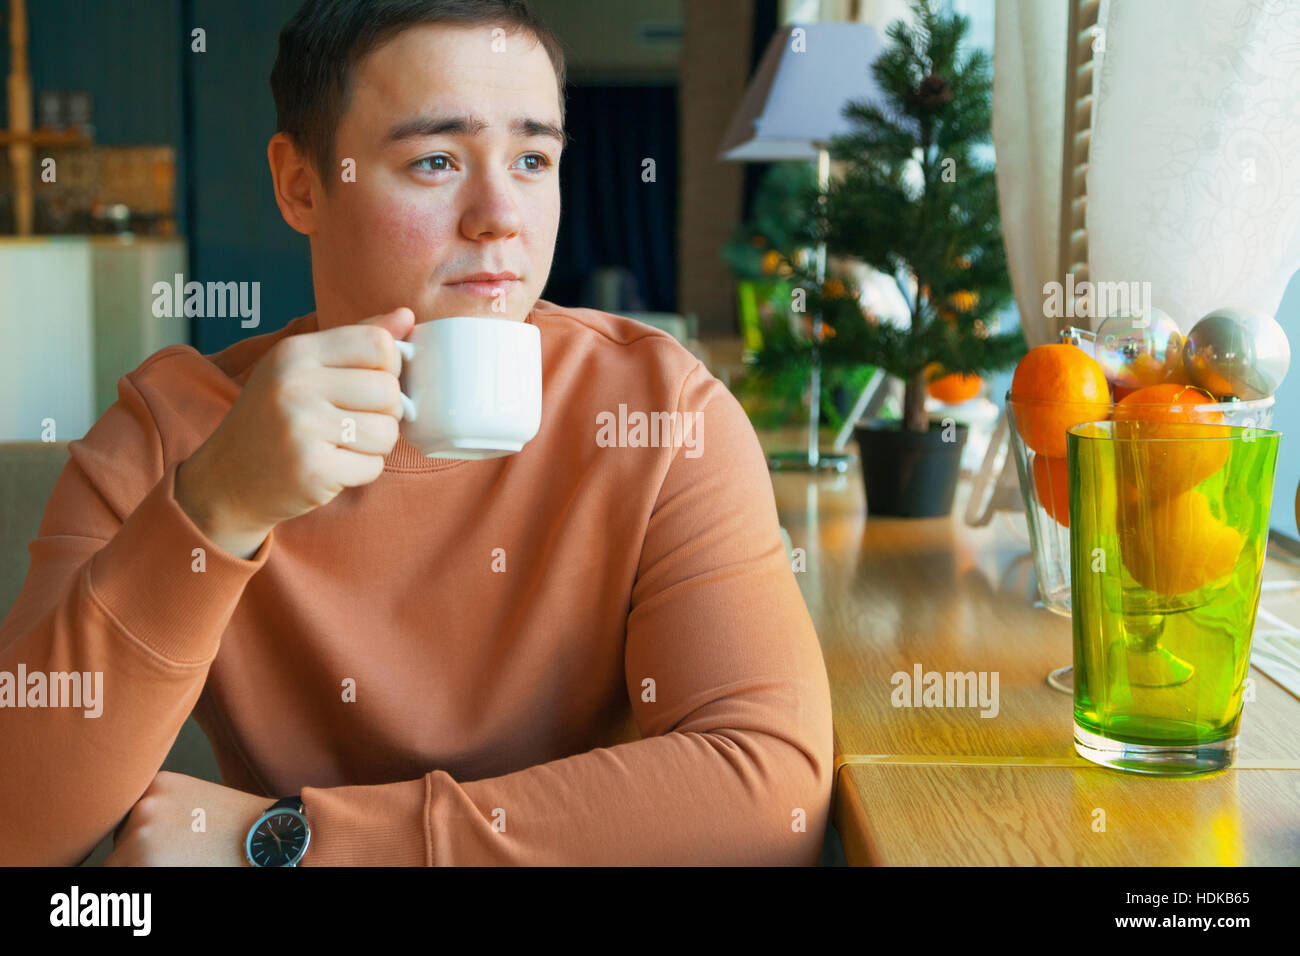 Man in cafe Photo Stock